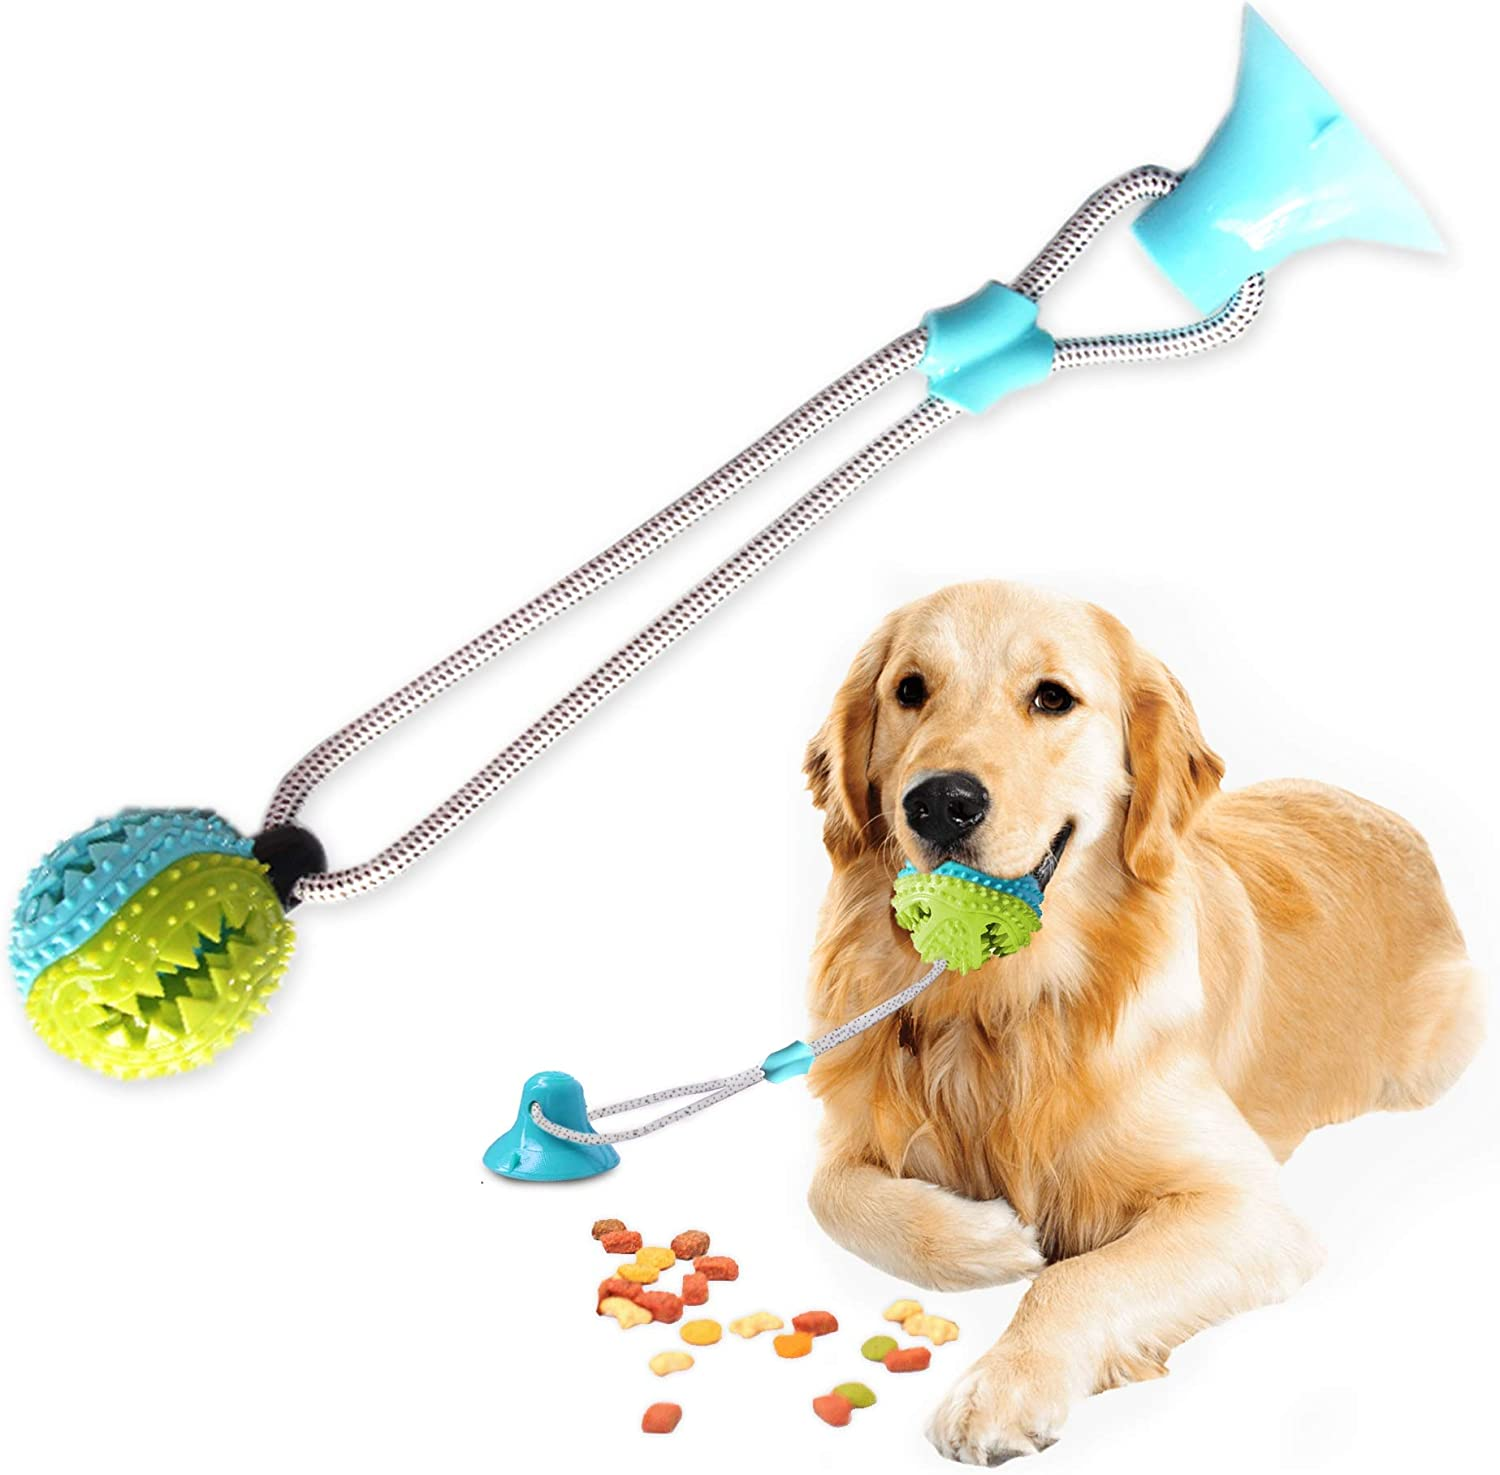 Smart Dog Suction Cup Tug of War Dog Toy, Self-Playing Tug of War Dog Toy with Chew Rubber Ball, Dog Rope Toys for Chewers, Teeth Cleaning Interactive Pet Tug Toy for Boredom